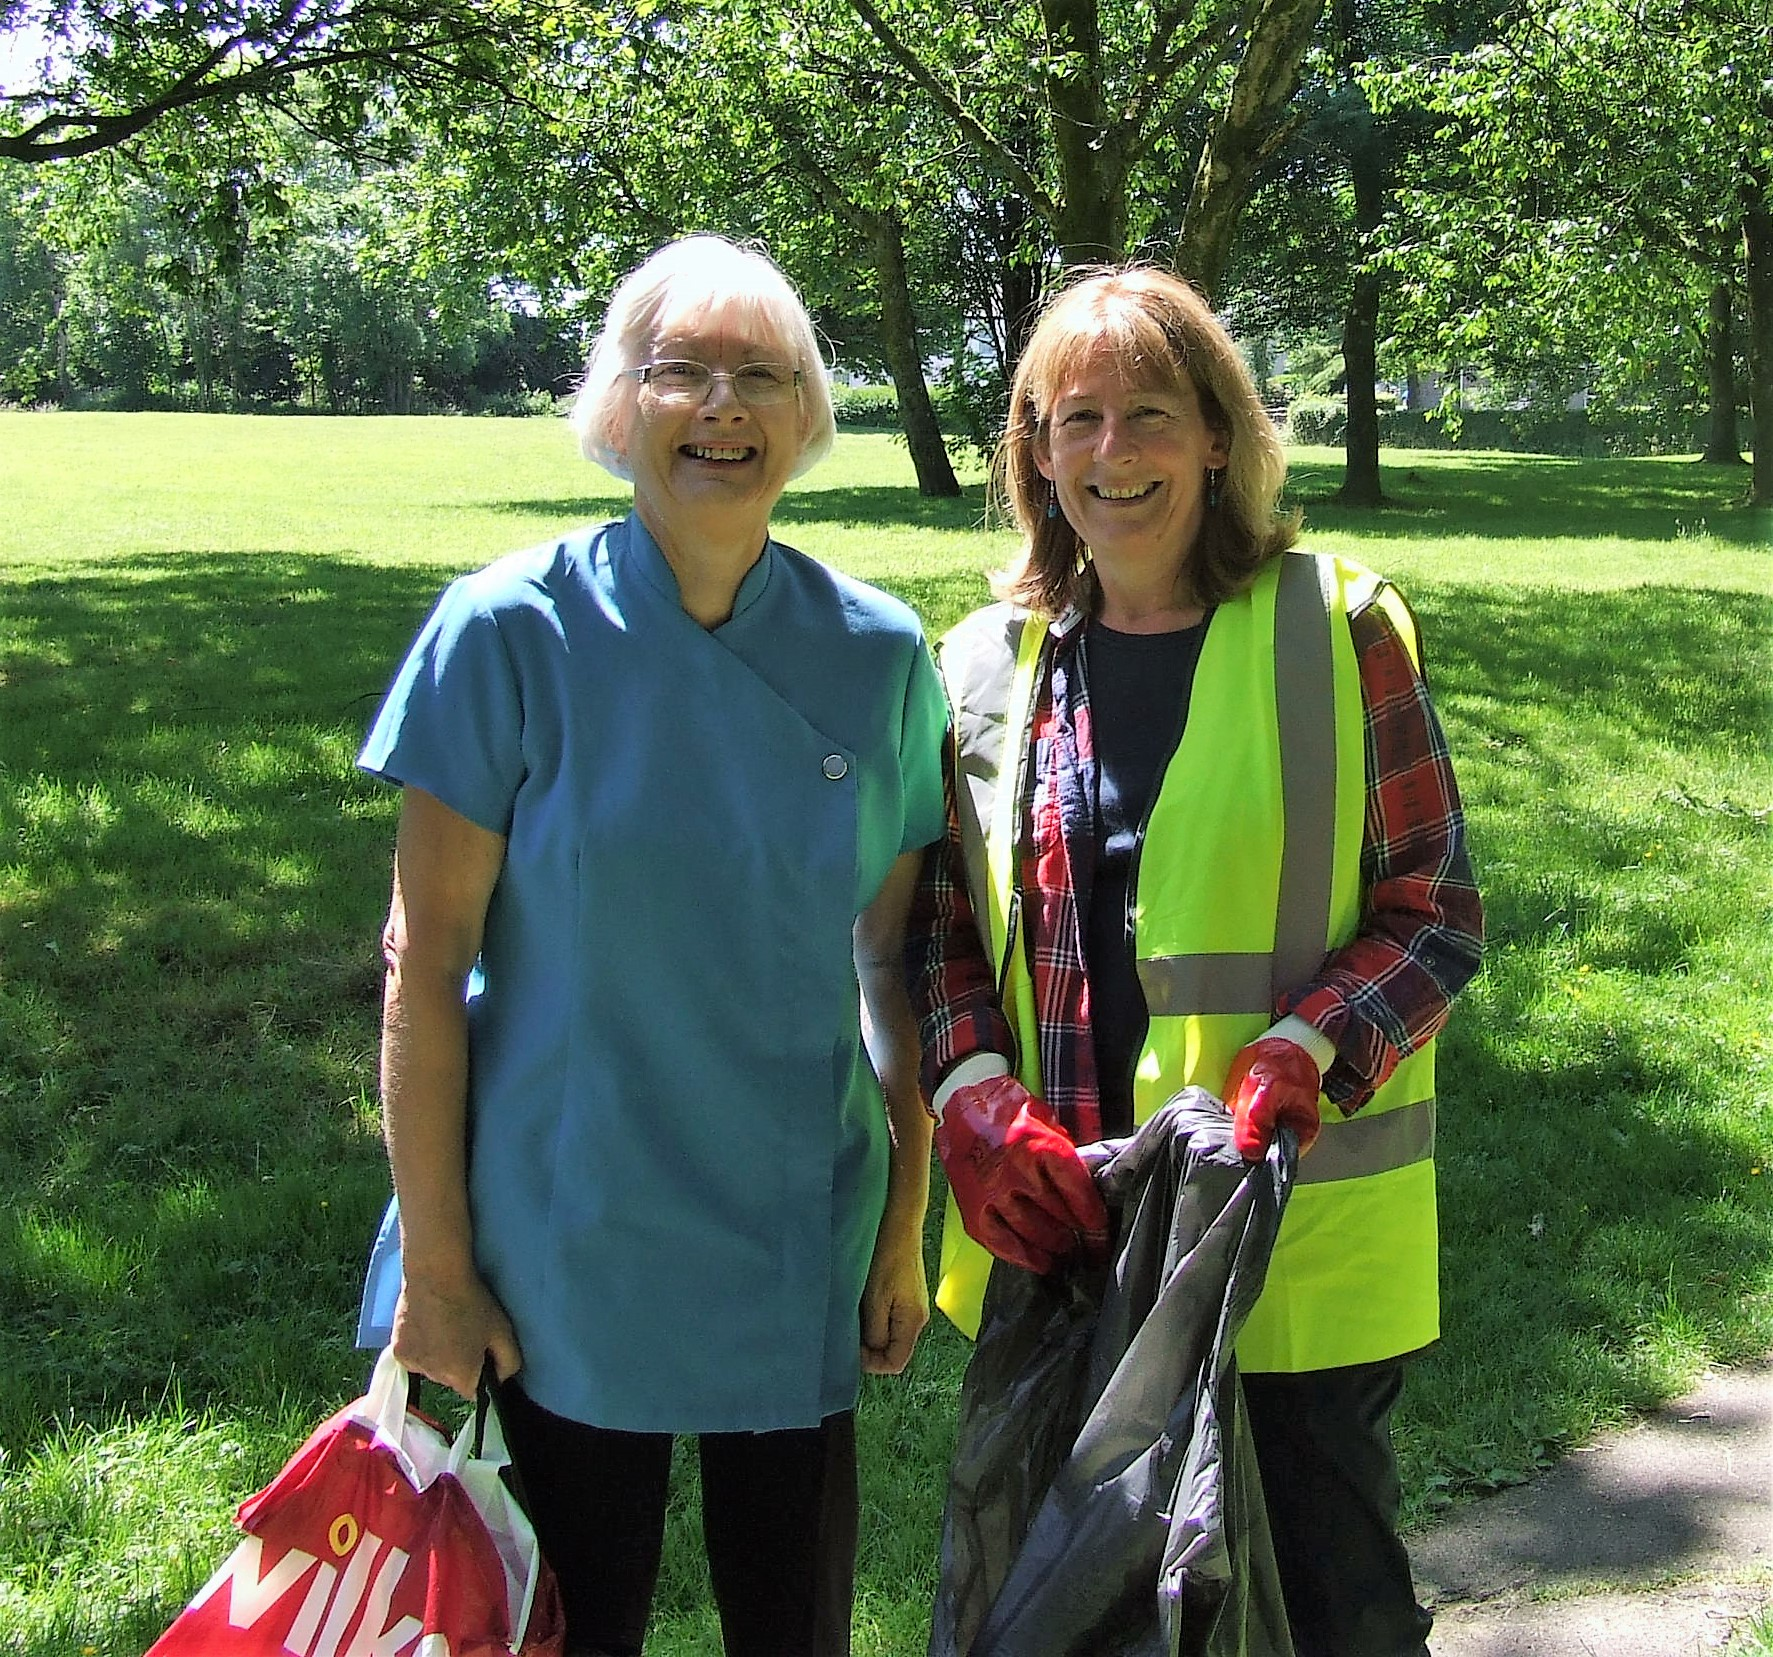 Litter picking adventures in Bishopston and Swansea Bay